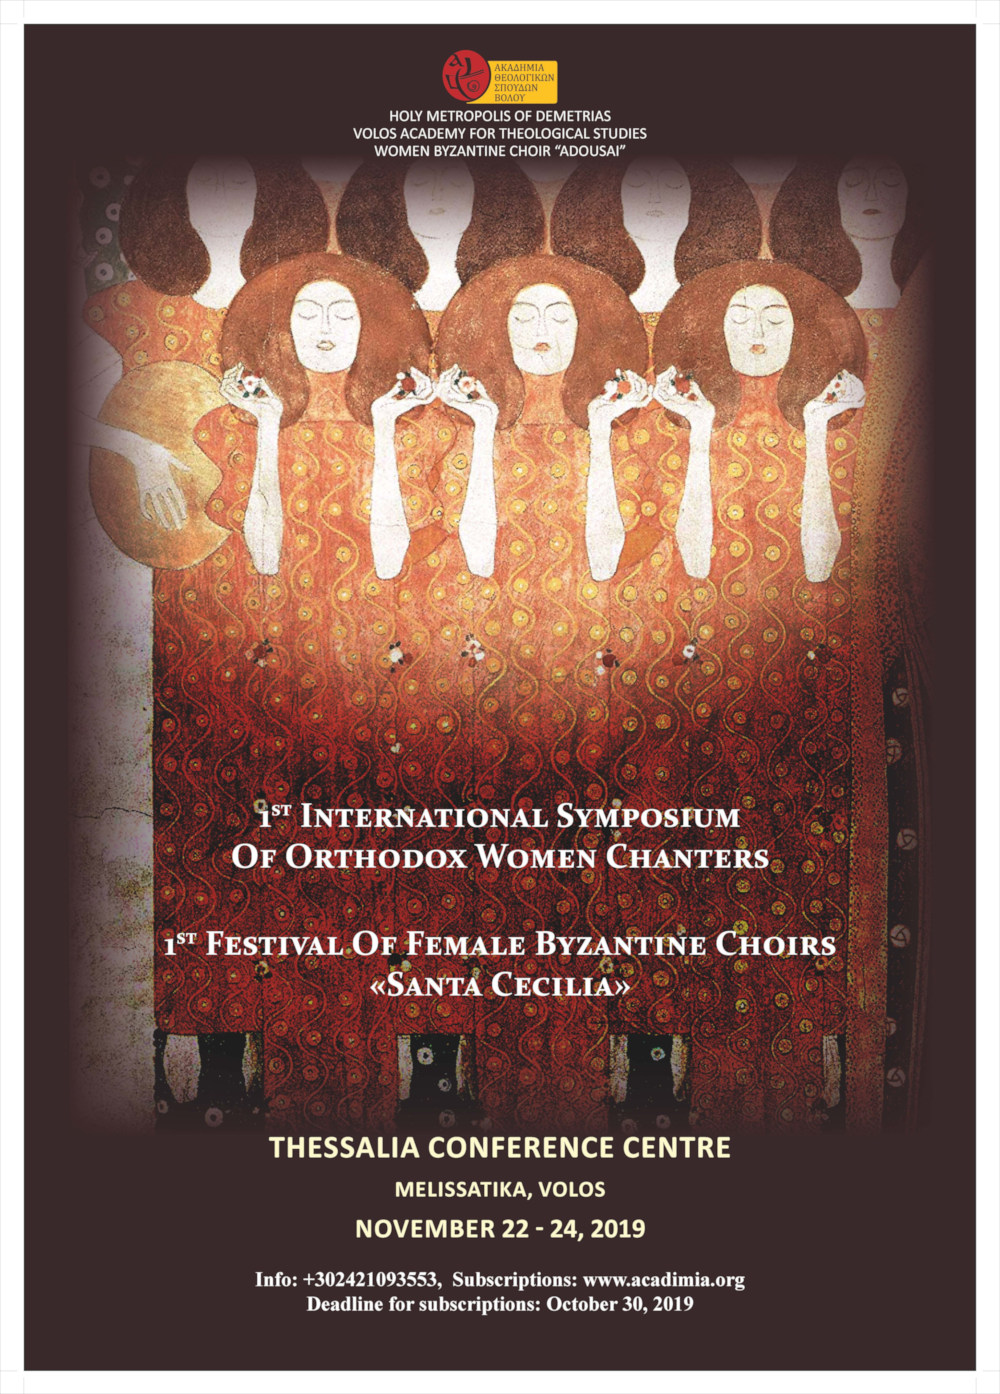 1st International Symposium Of Orthodox Women Chanters & 1st Festival Of Female Byzantine Choirs